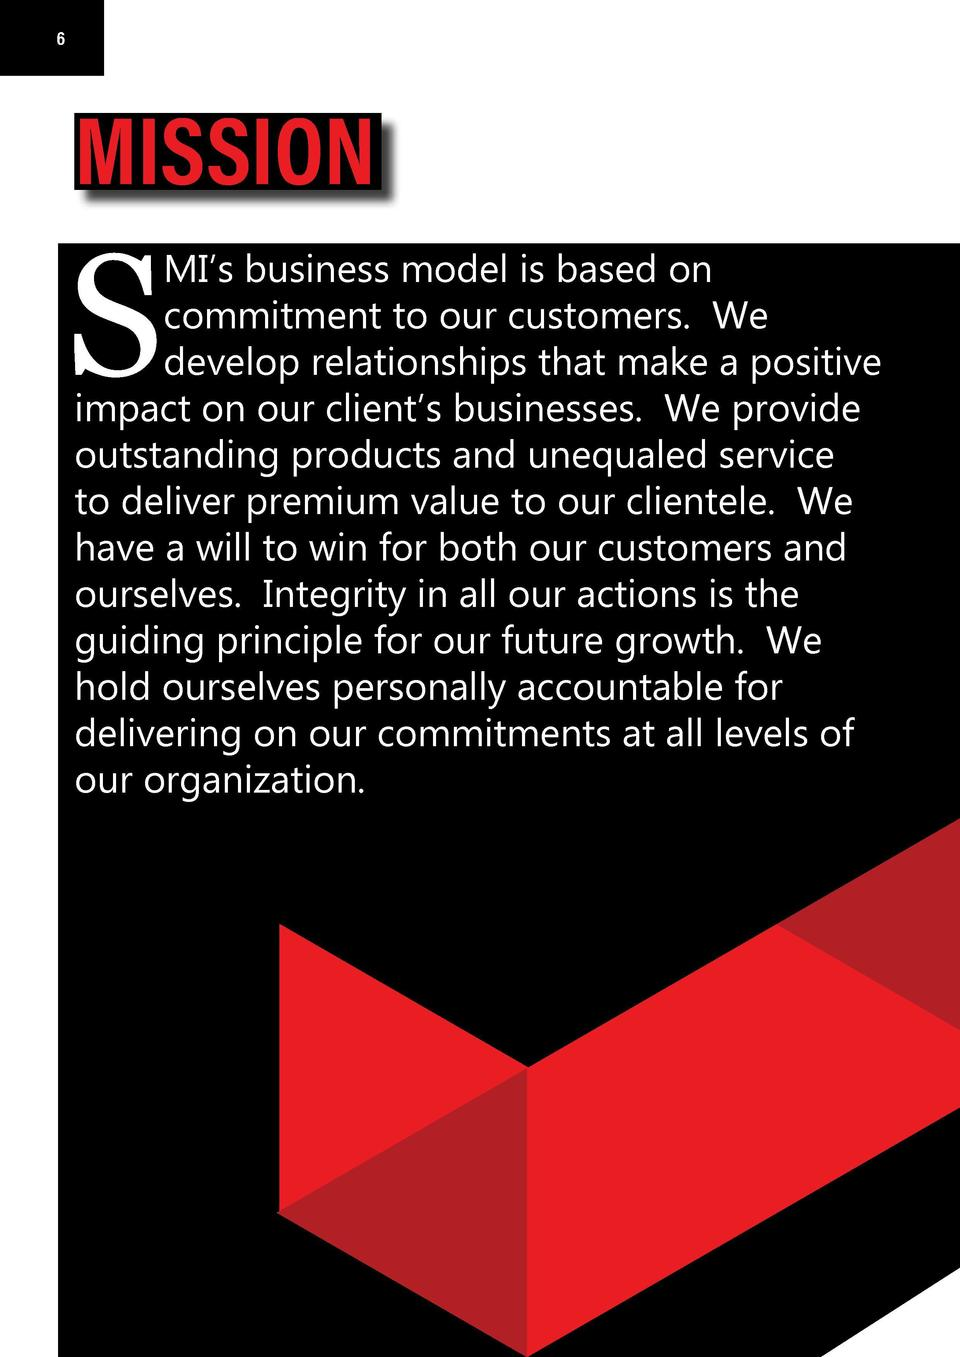 6  6  7  MISSION  VISION  S  S  MI   s business model is based on commitment to our customers. We develop relationships th...